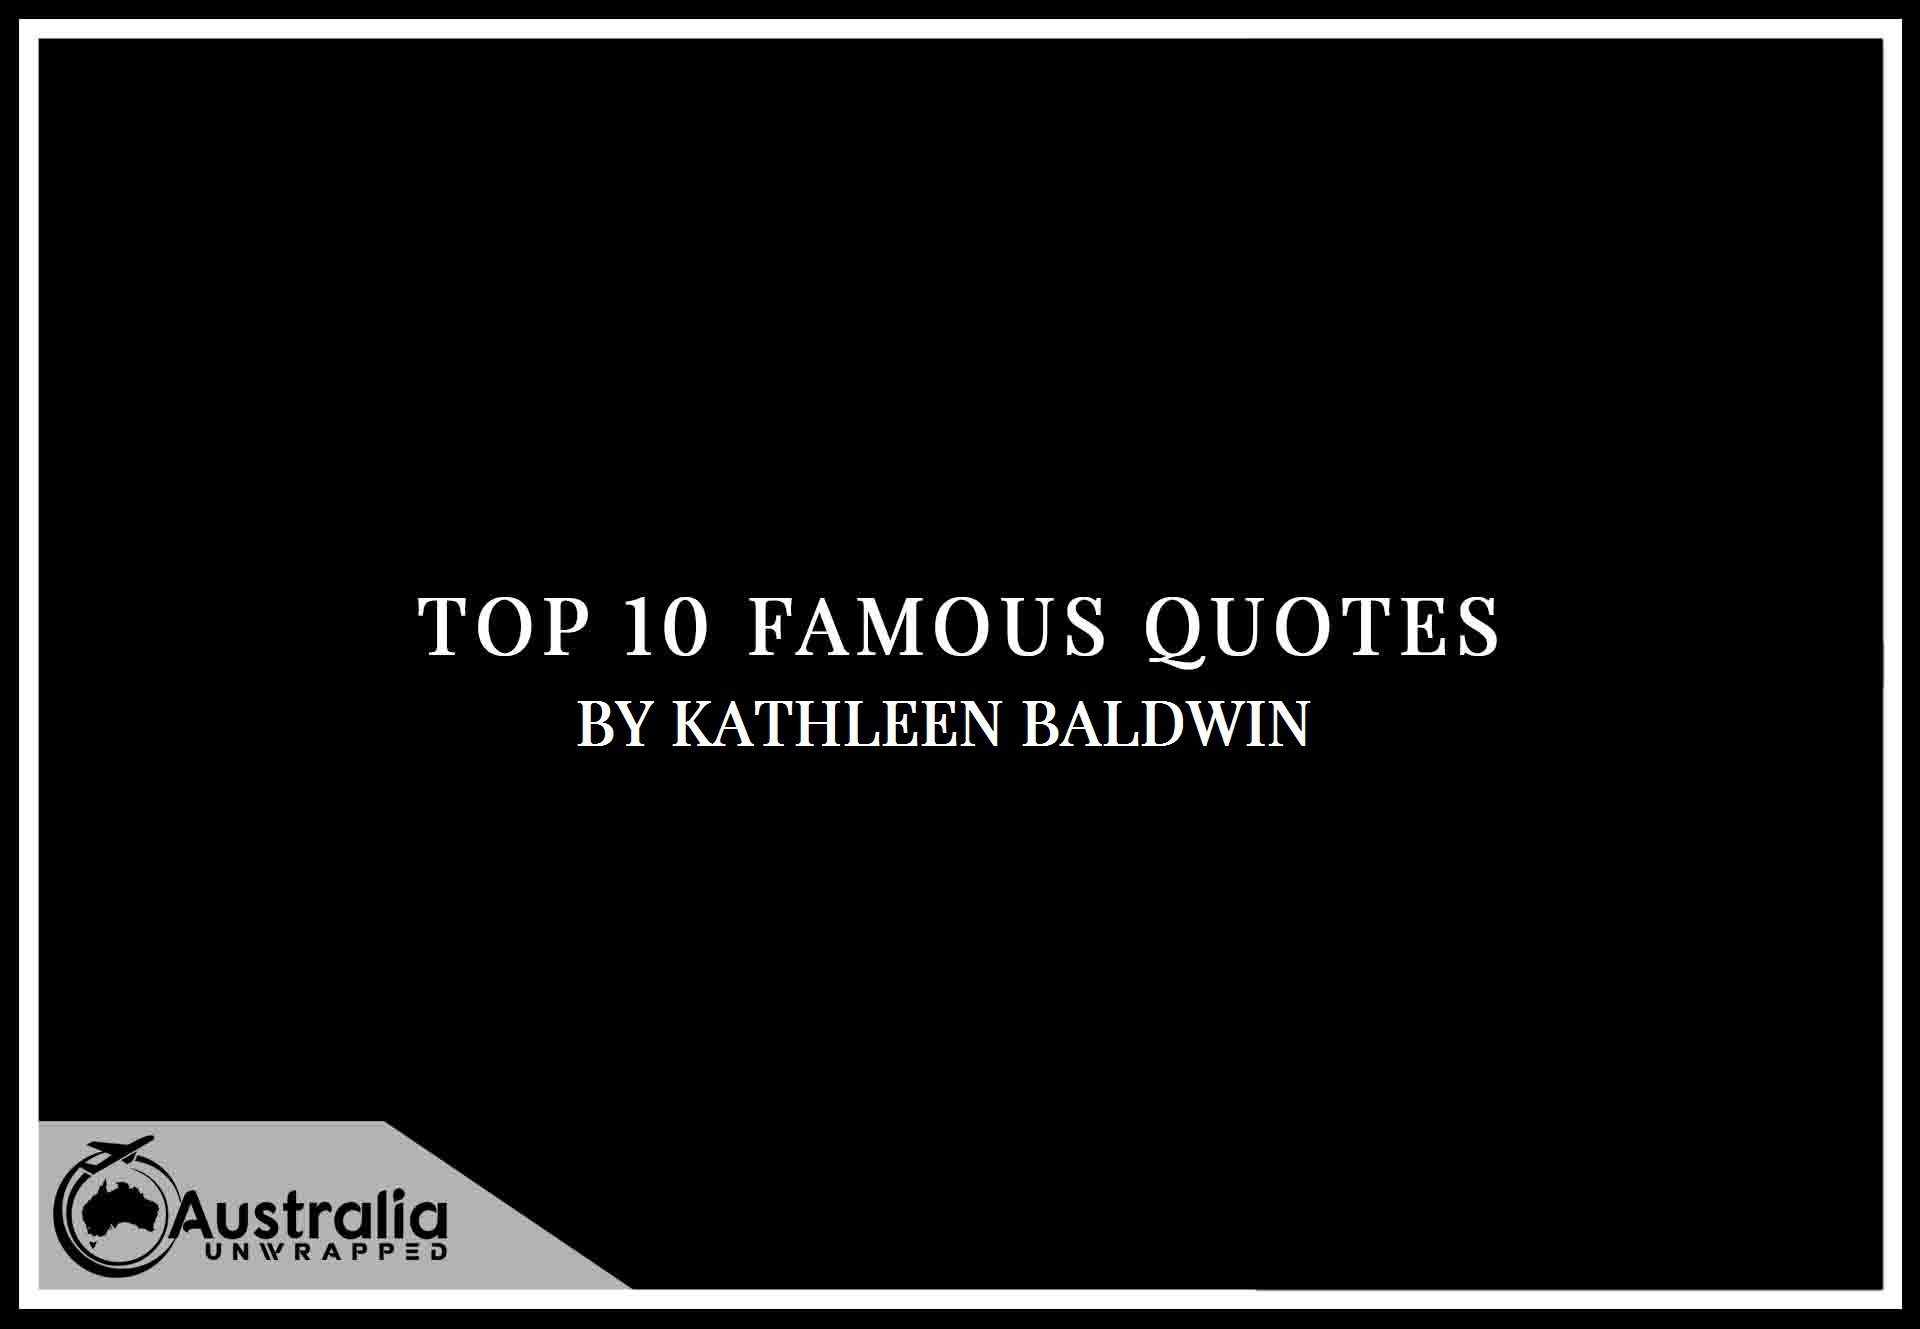 Kathleen Baldwin's Top 10 Popular and Famous Quotes